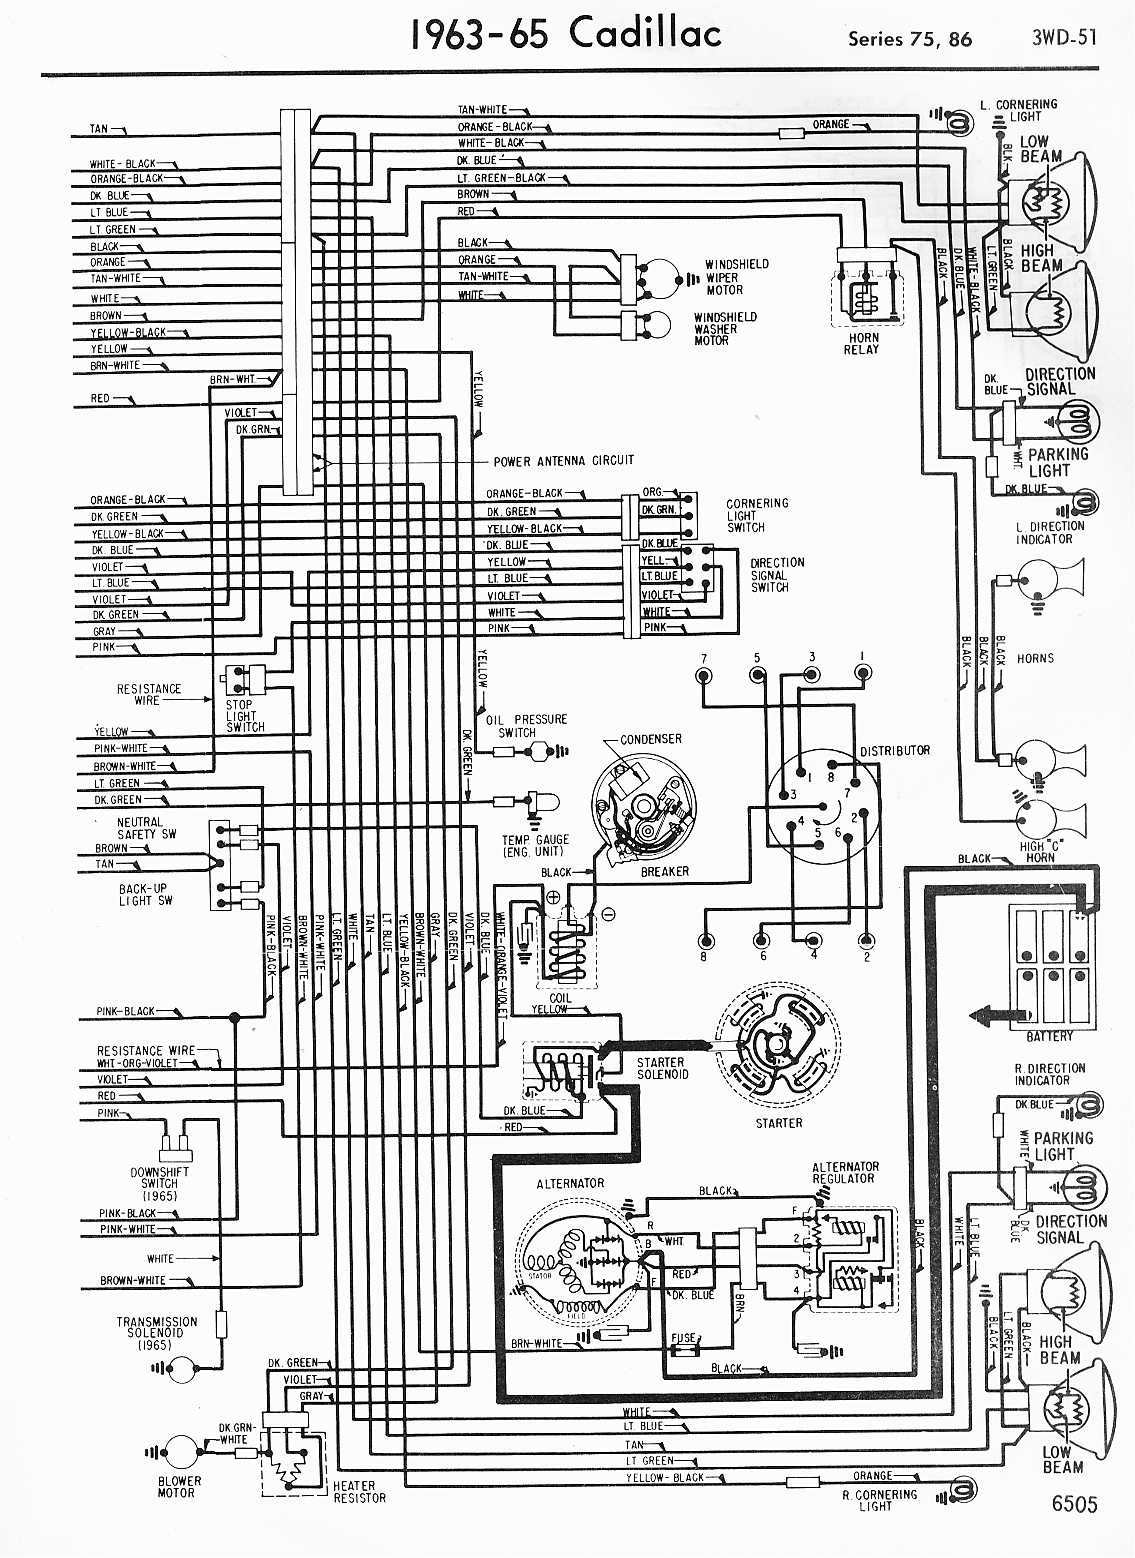 rover 75 abs wiring diagram advance mark 7 dimming ballast 1964 cadillac fleetwood passenger seat all quit working